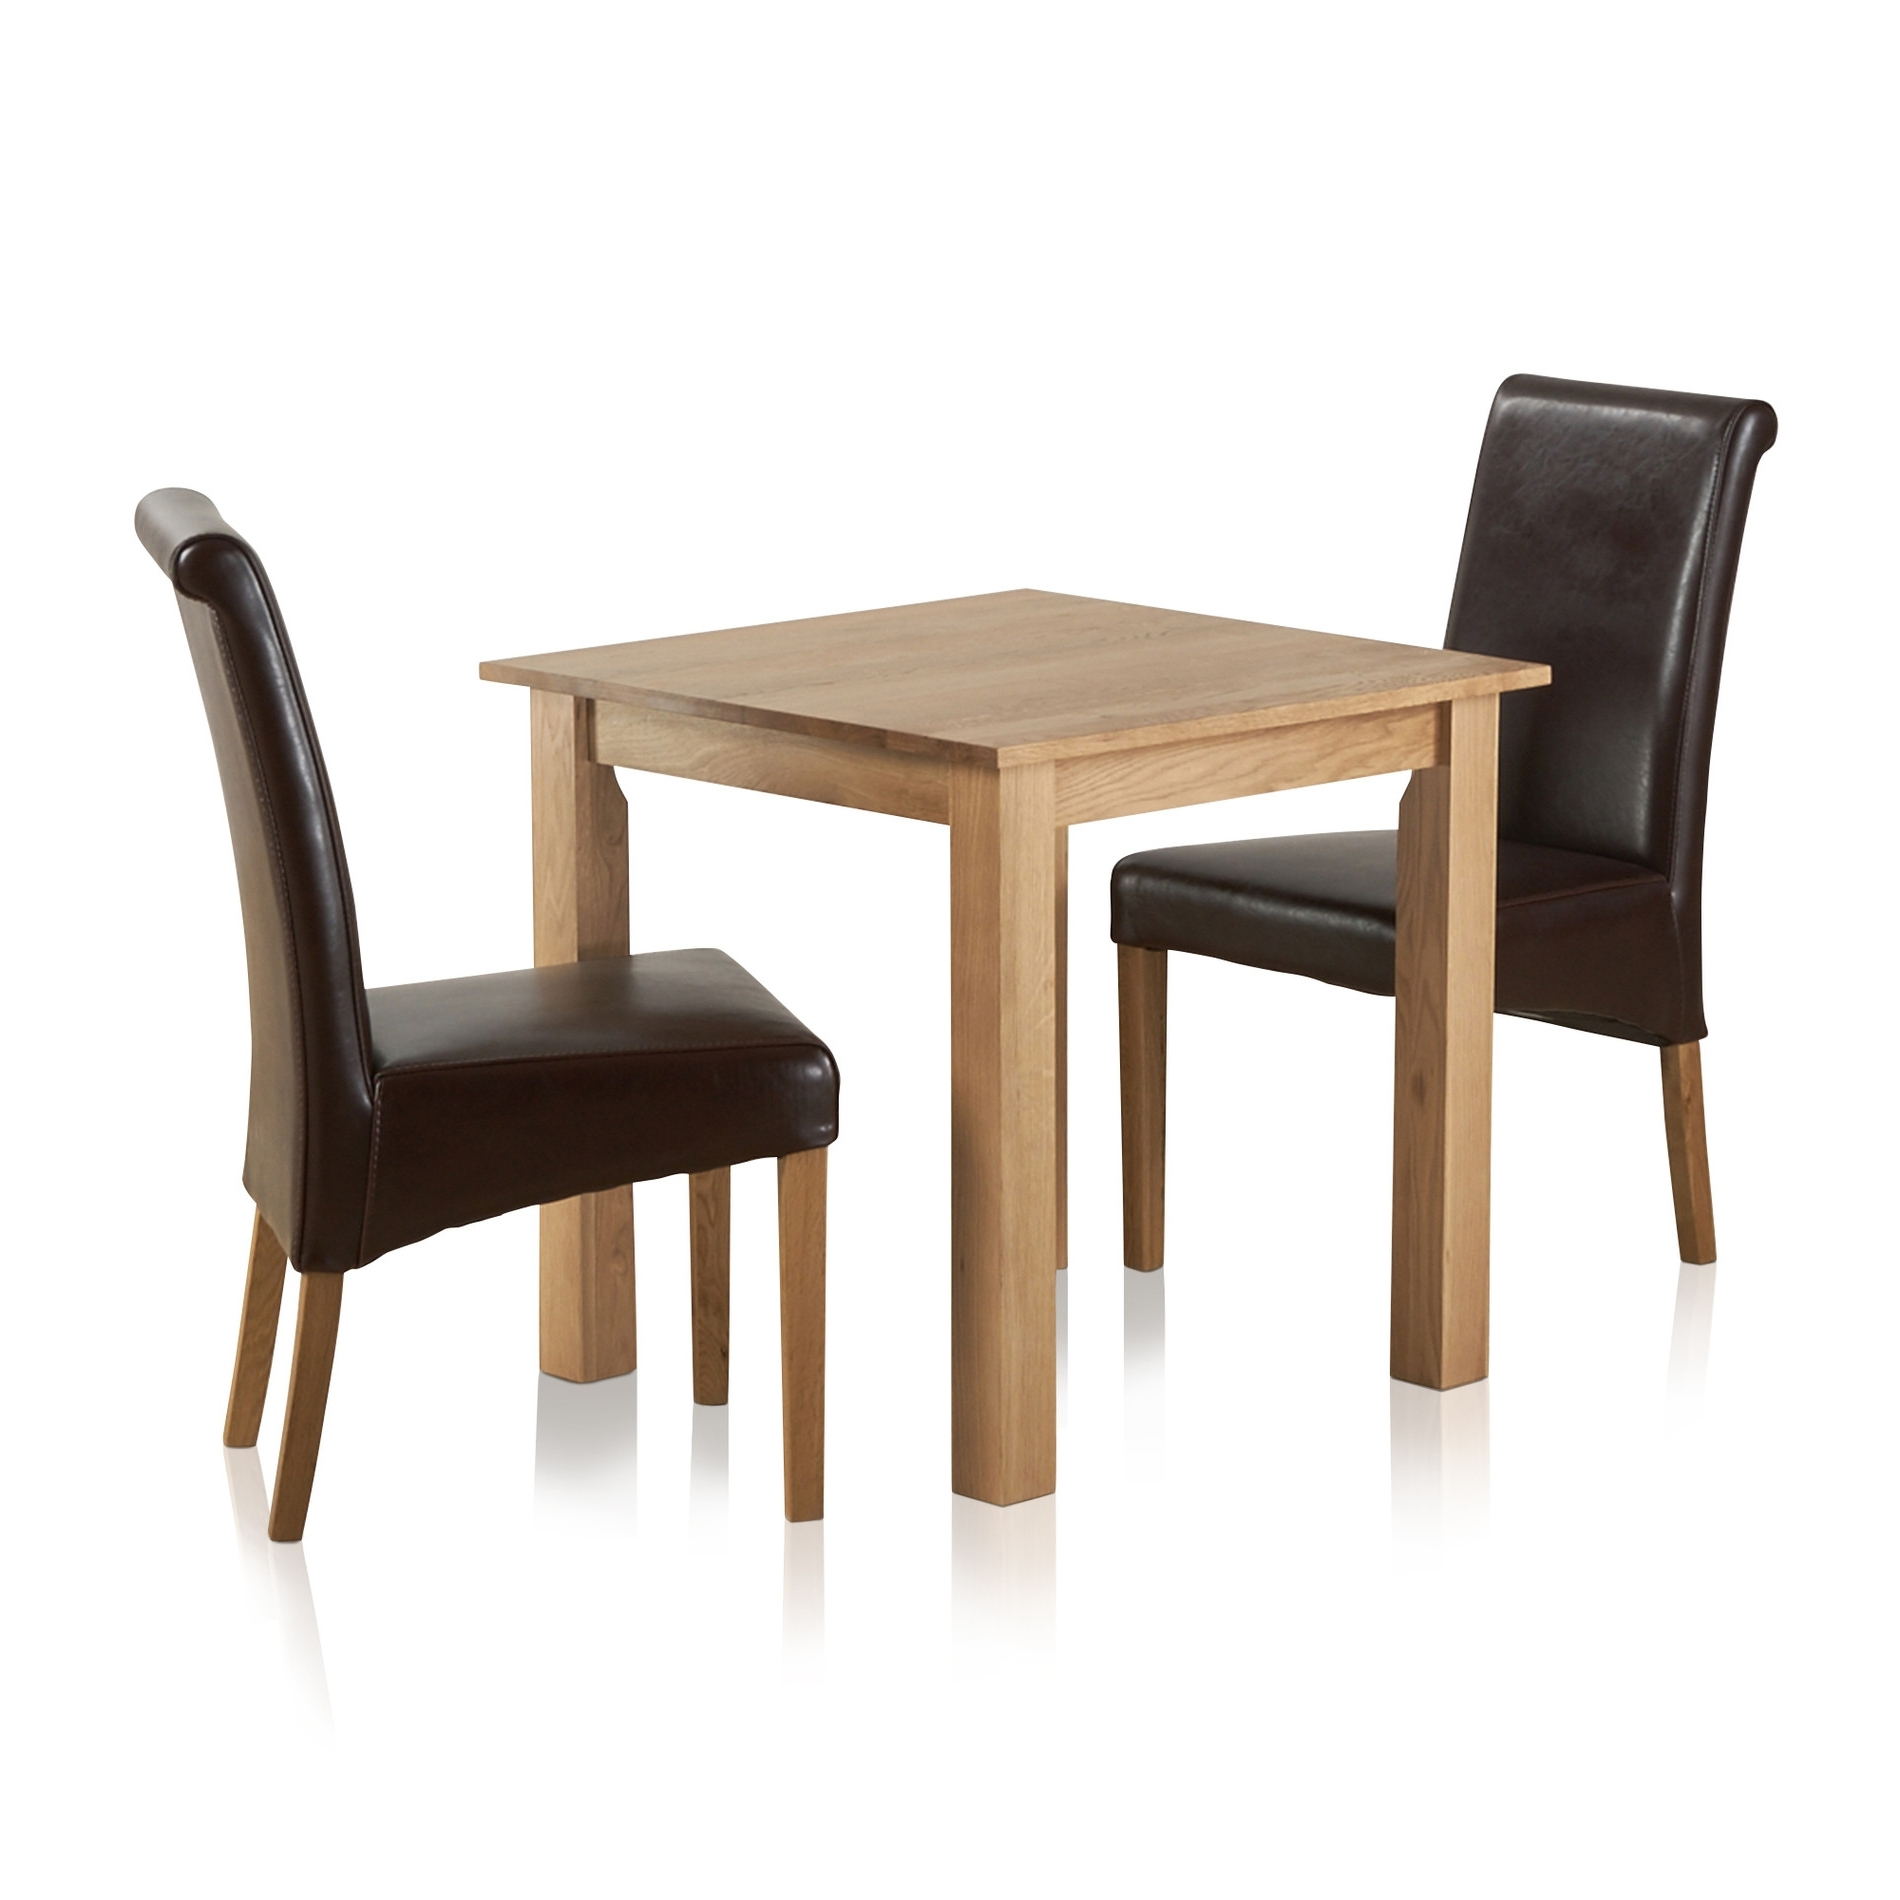 Hudson Dining Tables And Chairs In Most Recent Hudson Dining Set In Natural Oak – Table + 2 Leather Chairs (View 8 of 25)